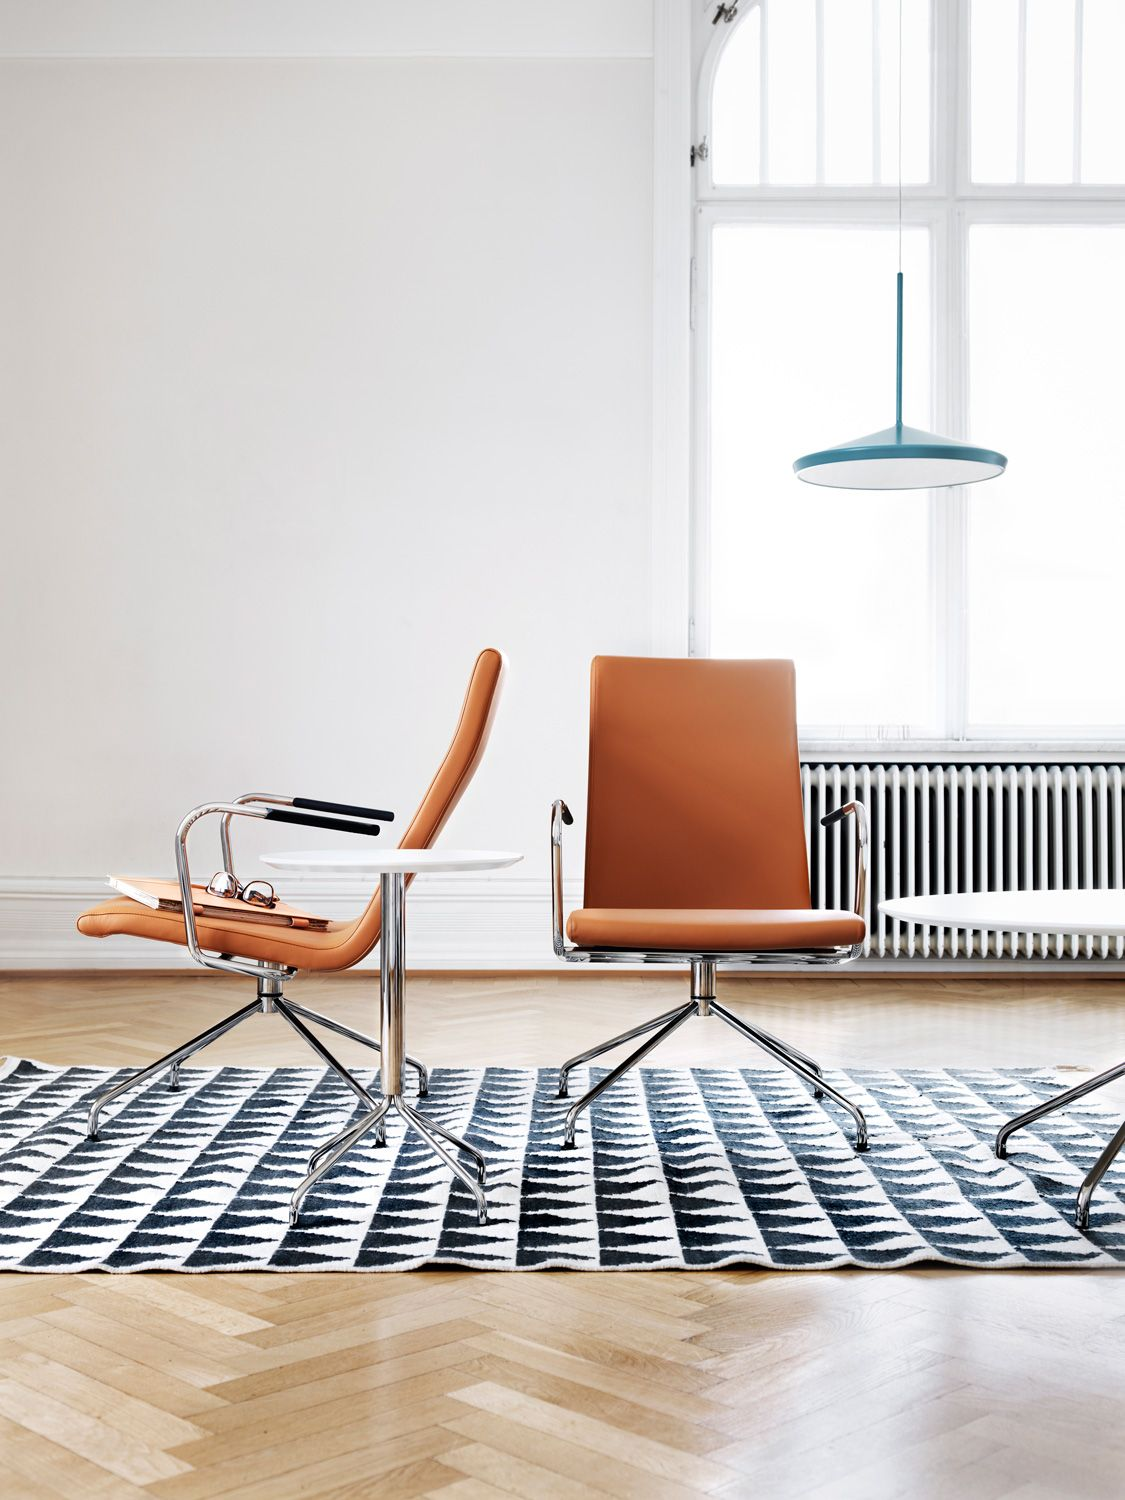 Scandinavian Office Furniture By Skandiform Scandinavian Furniture Chairs Scandinavian Office Furniture Office Furniture Design